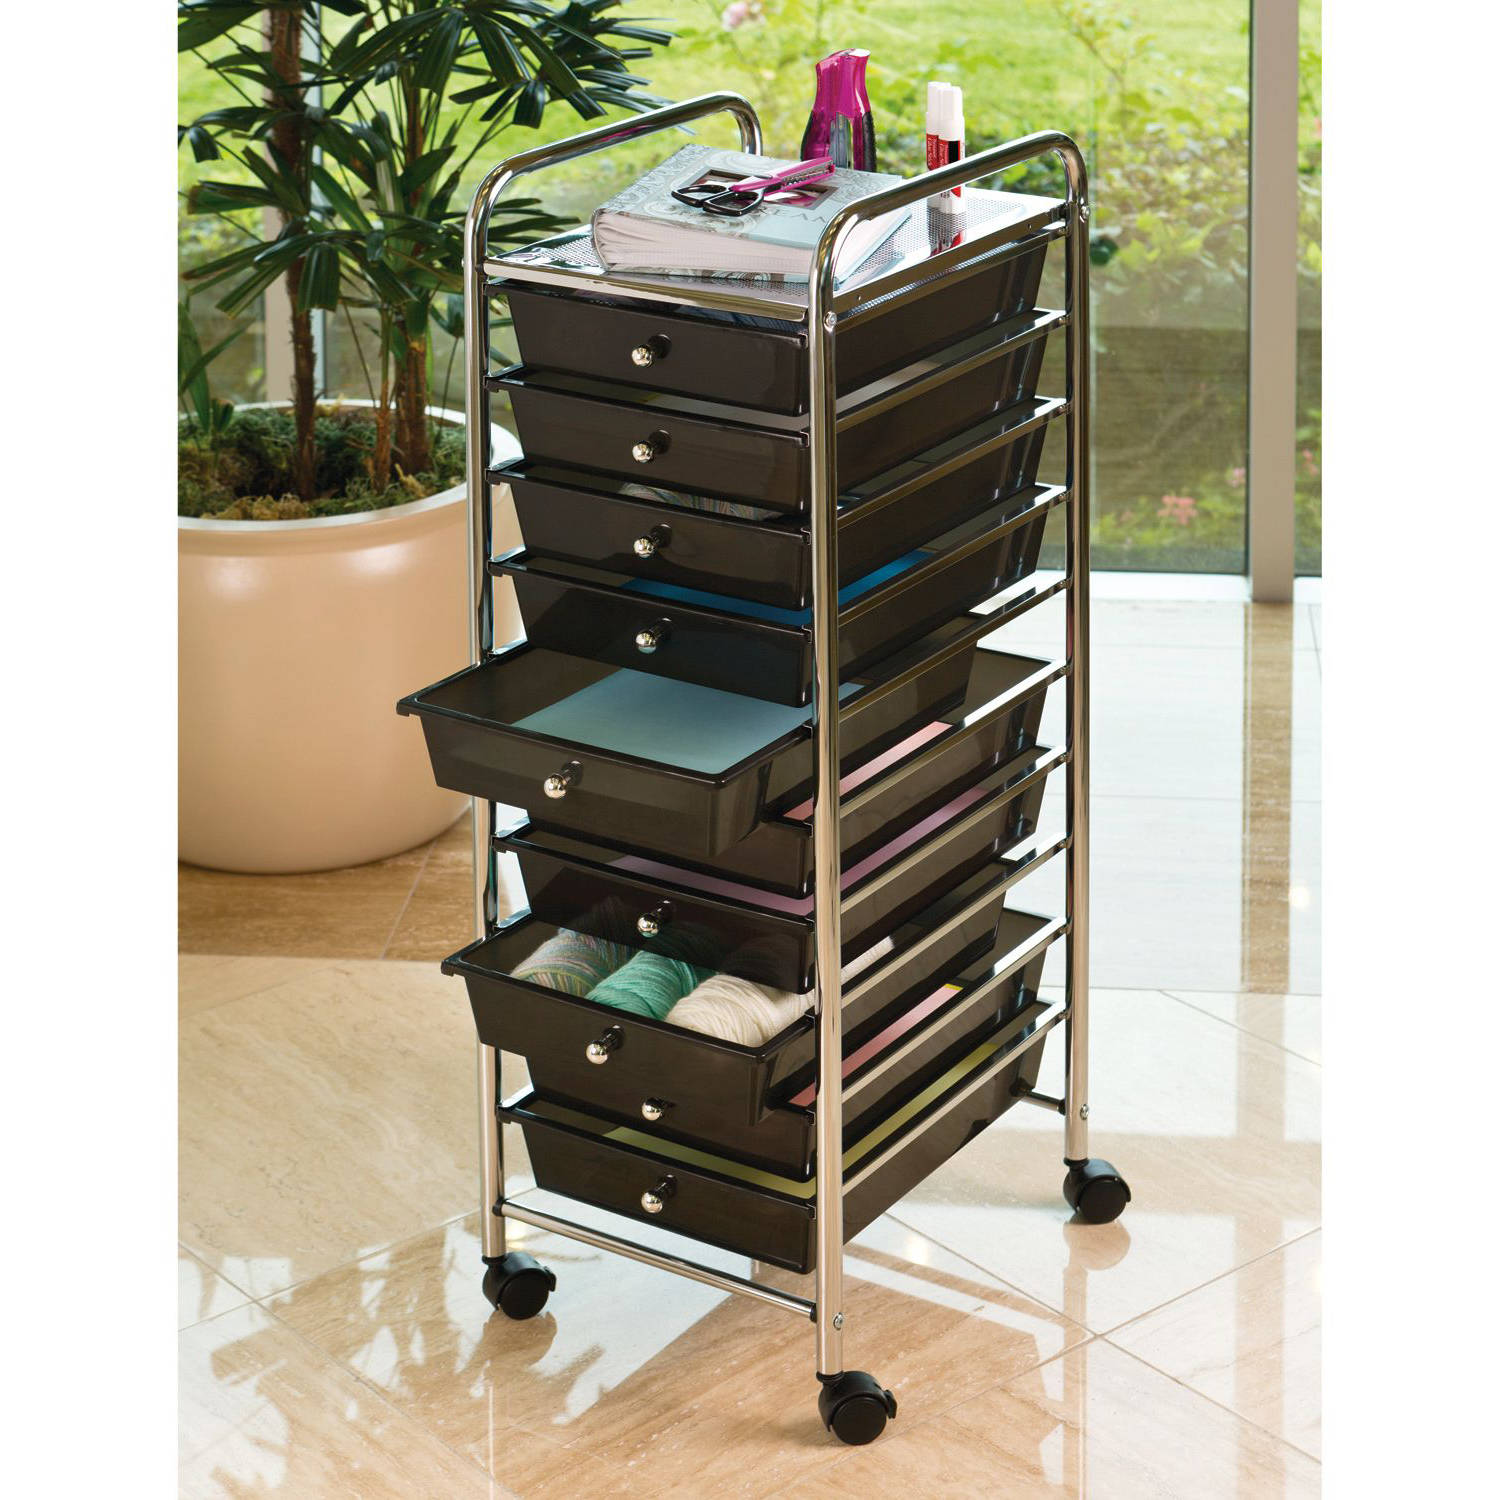 Captivating 10 Drawer Organizer Cart, Black By Seville Classics   Walmart.com